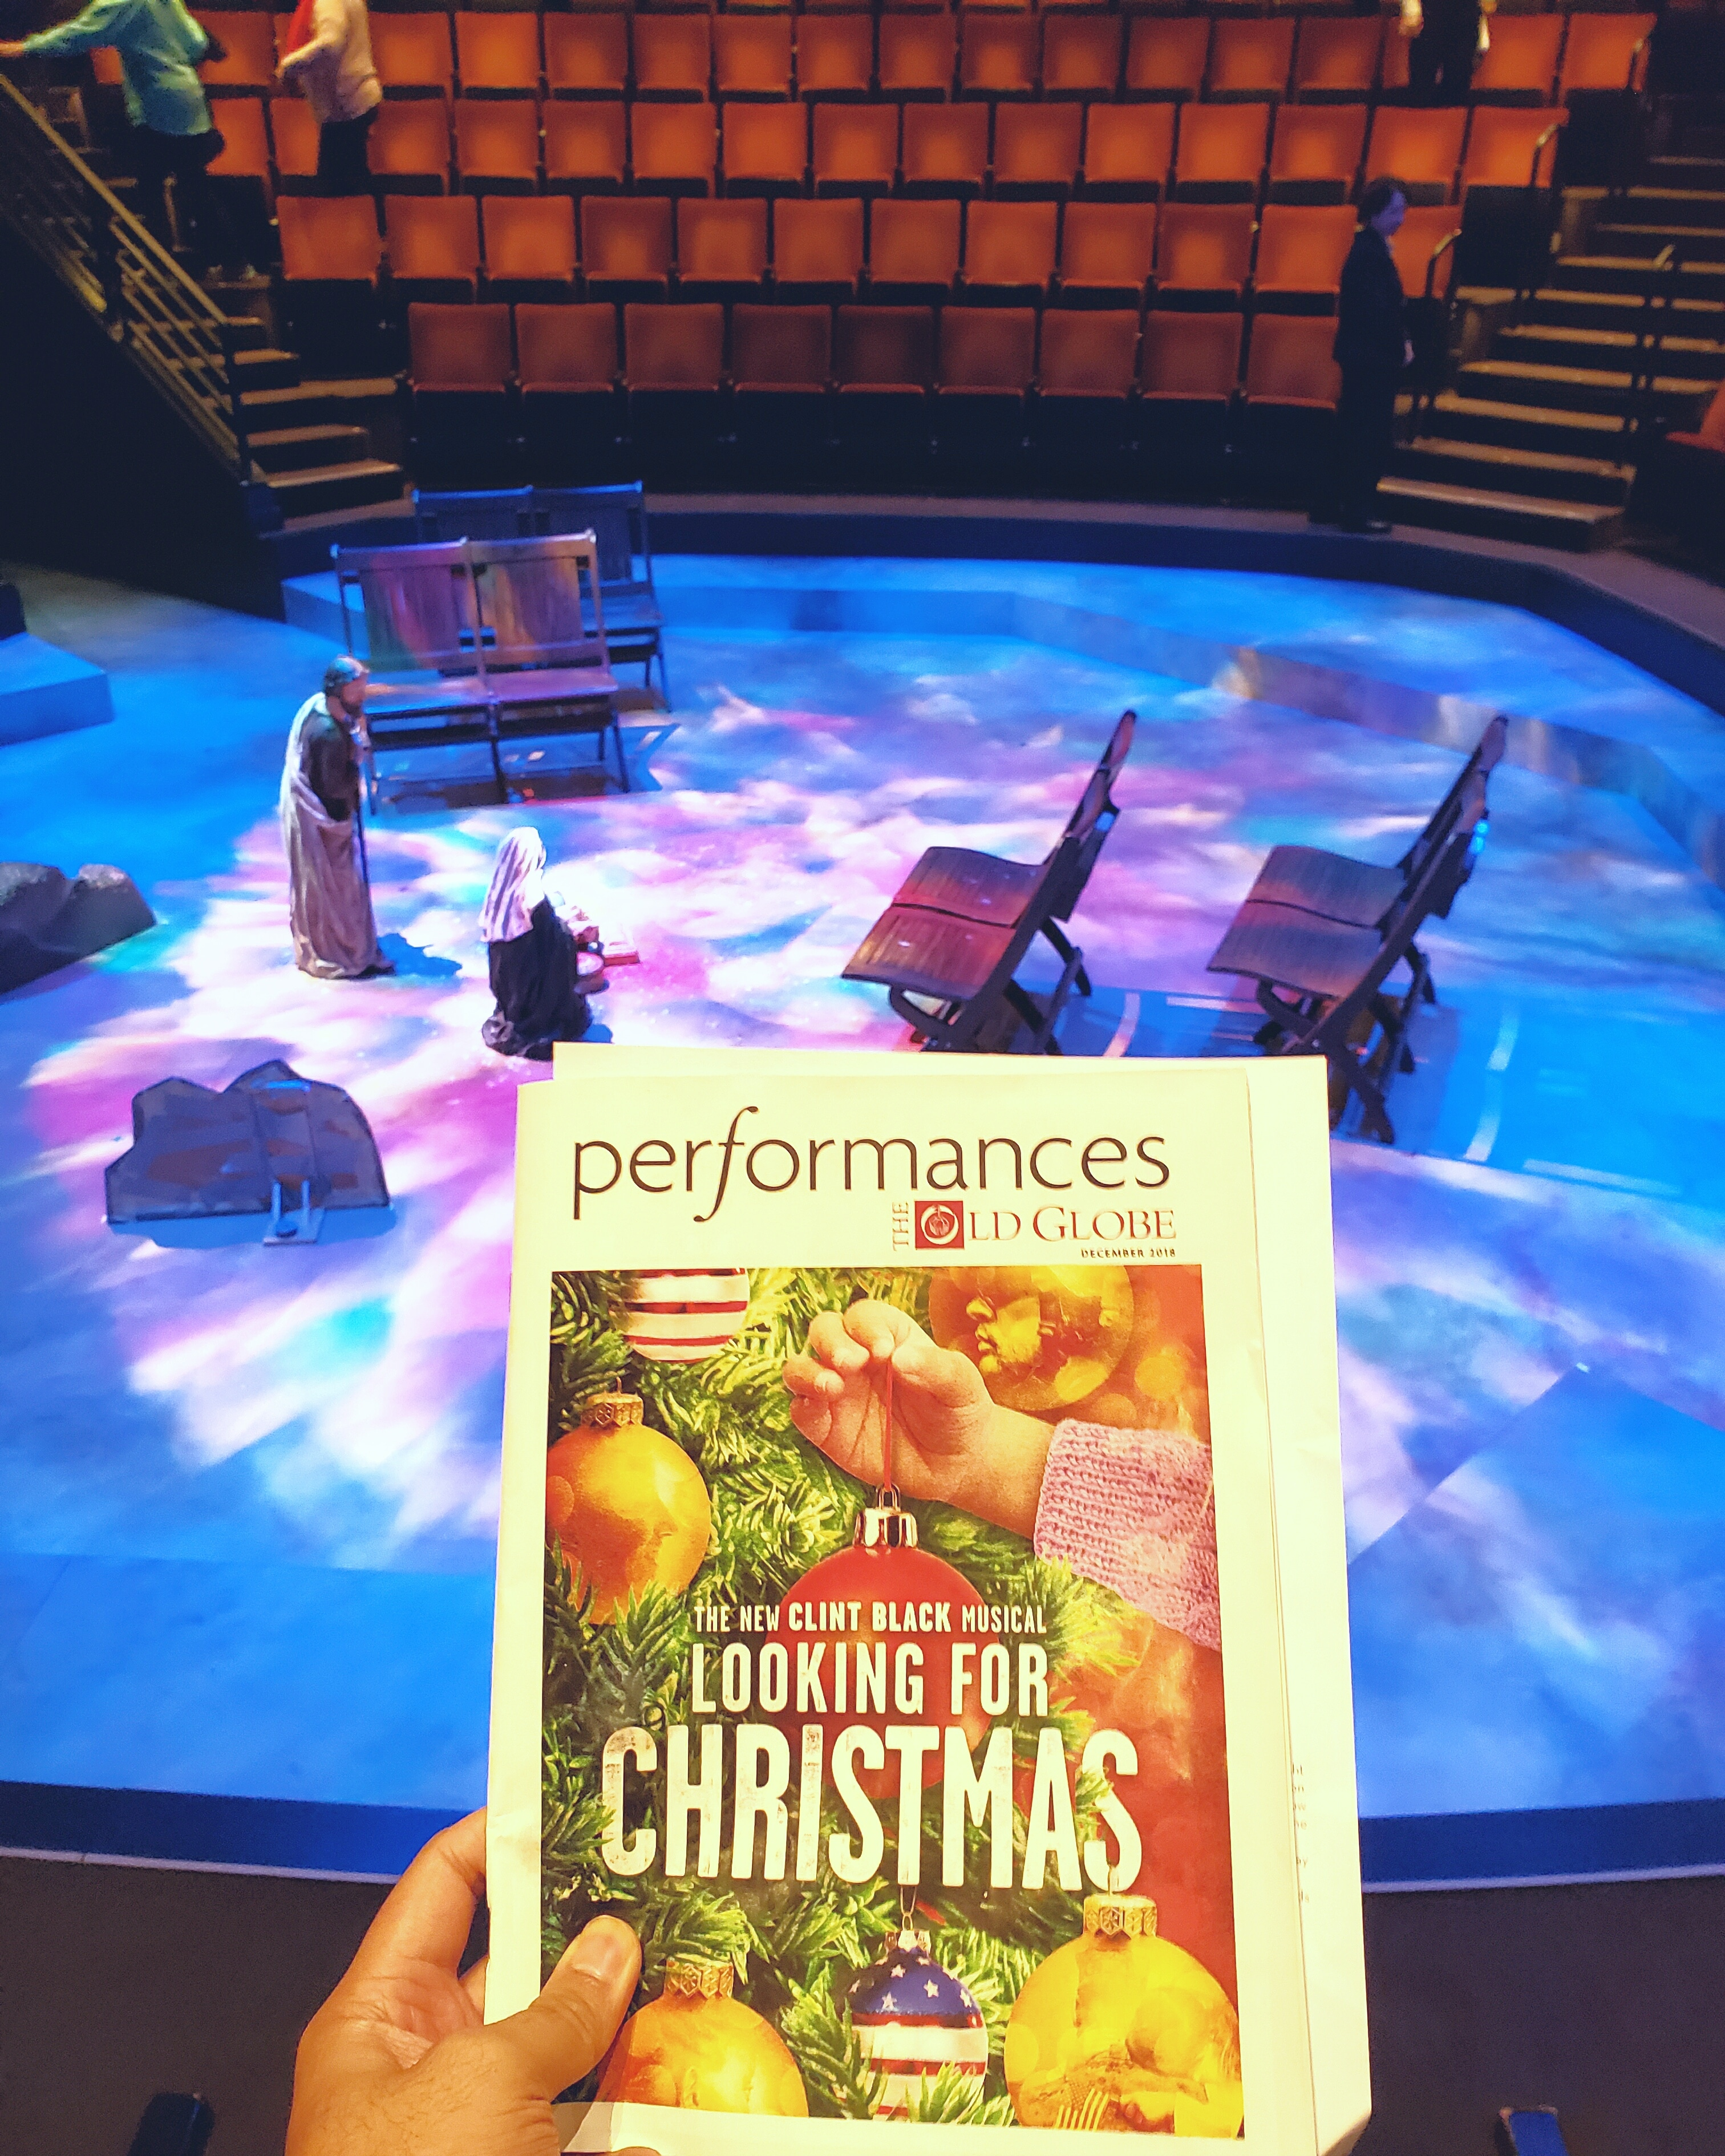 World-premier musical adaptation of Clint Black's country xmas album